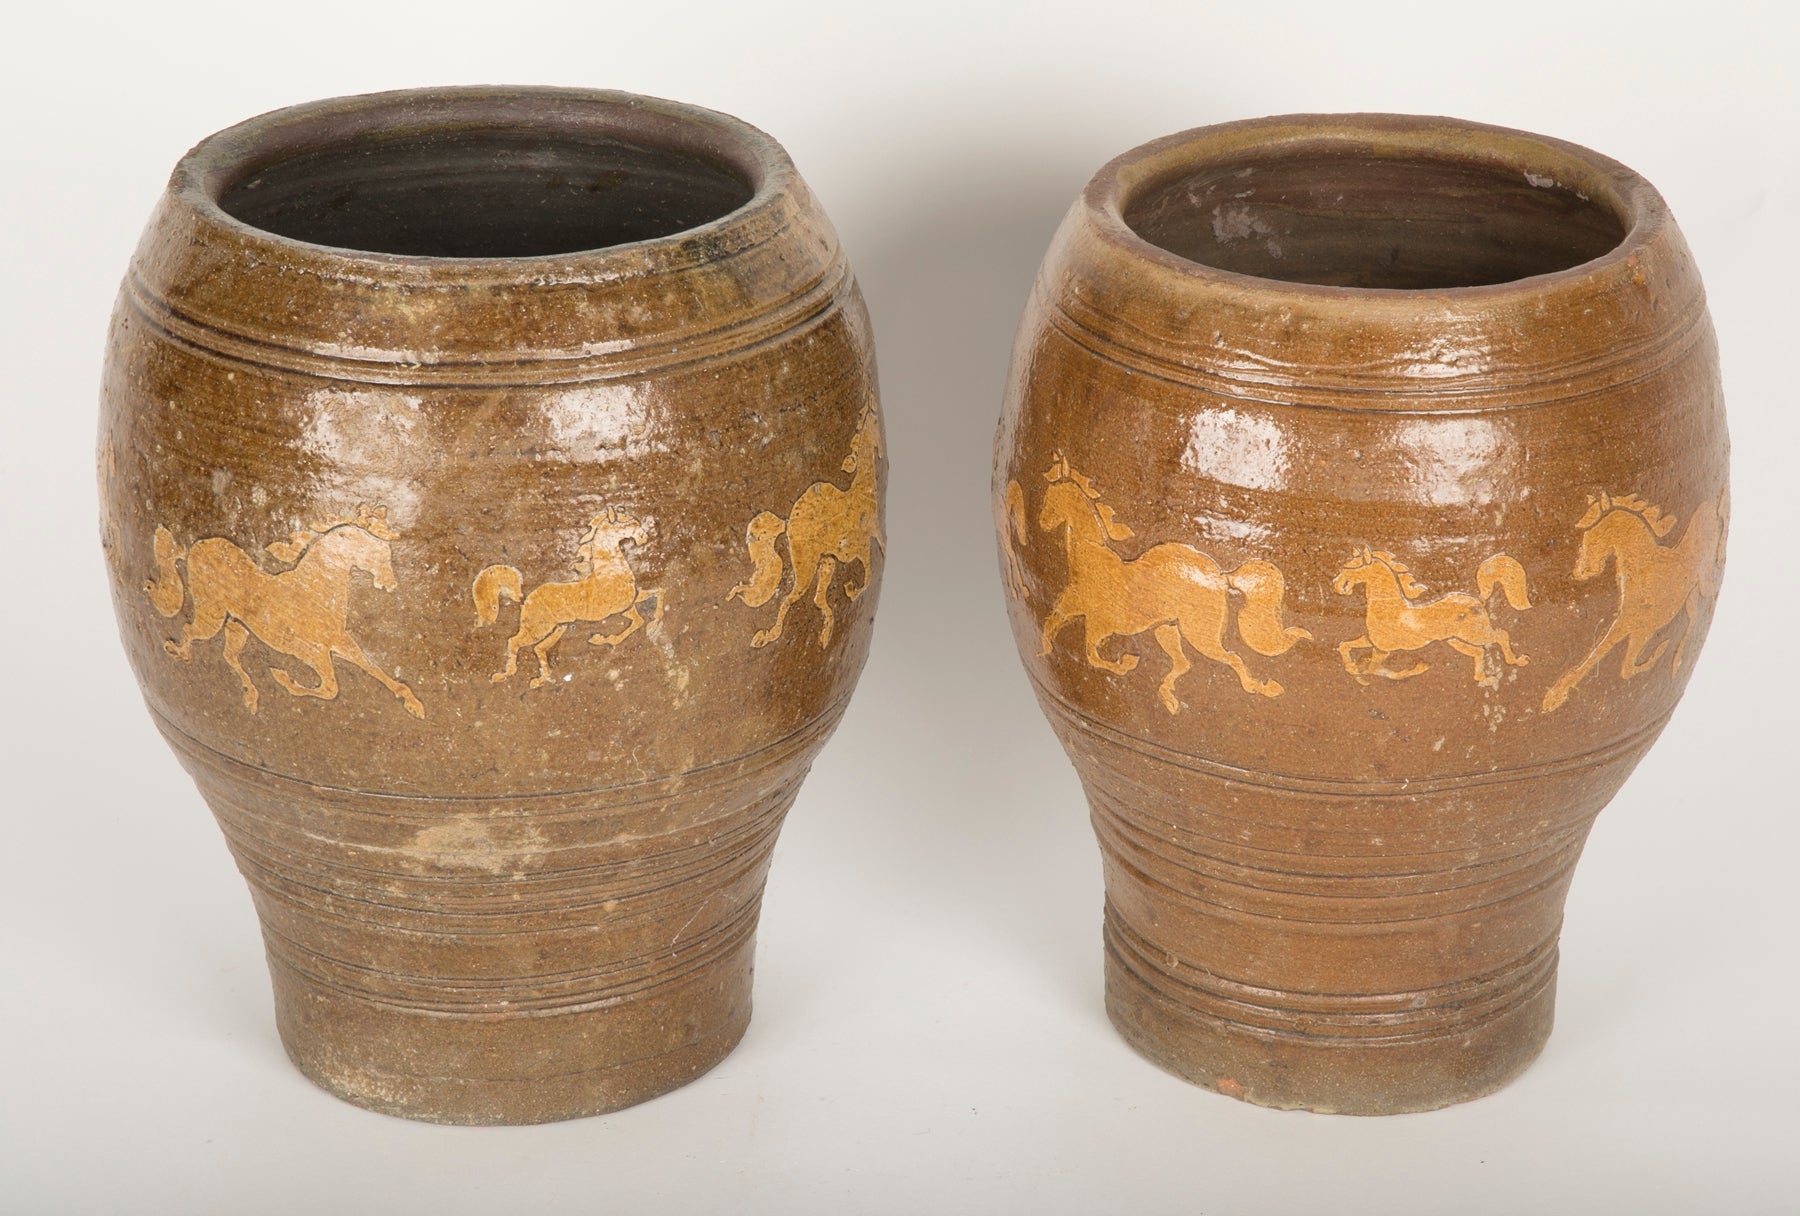 Pair of Late 19th Century Chinese Ceramic Pots